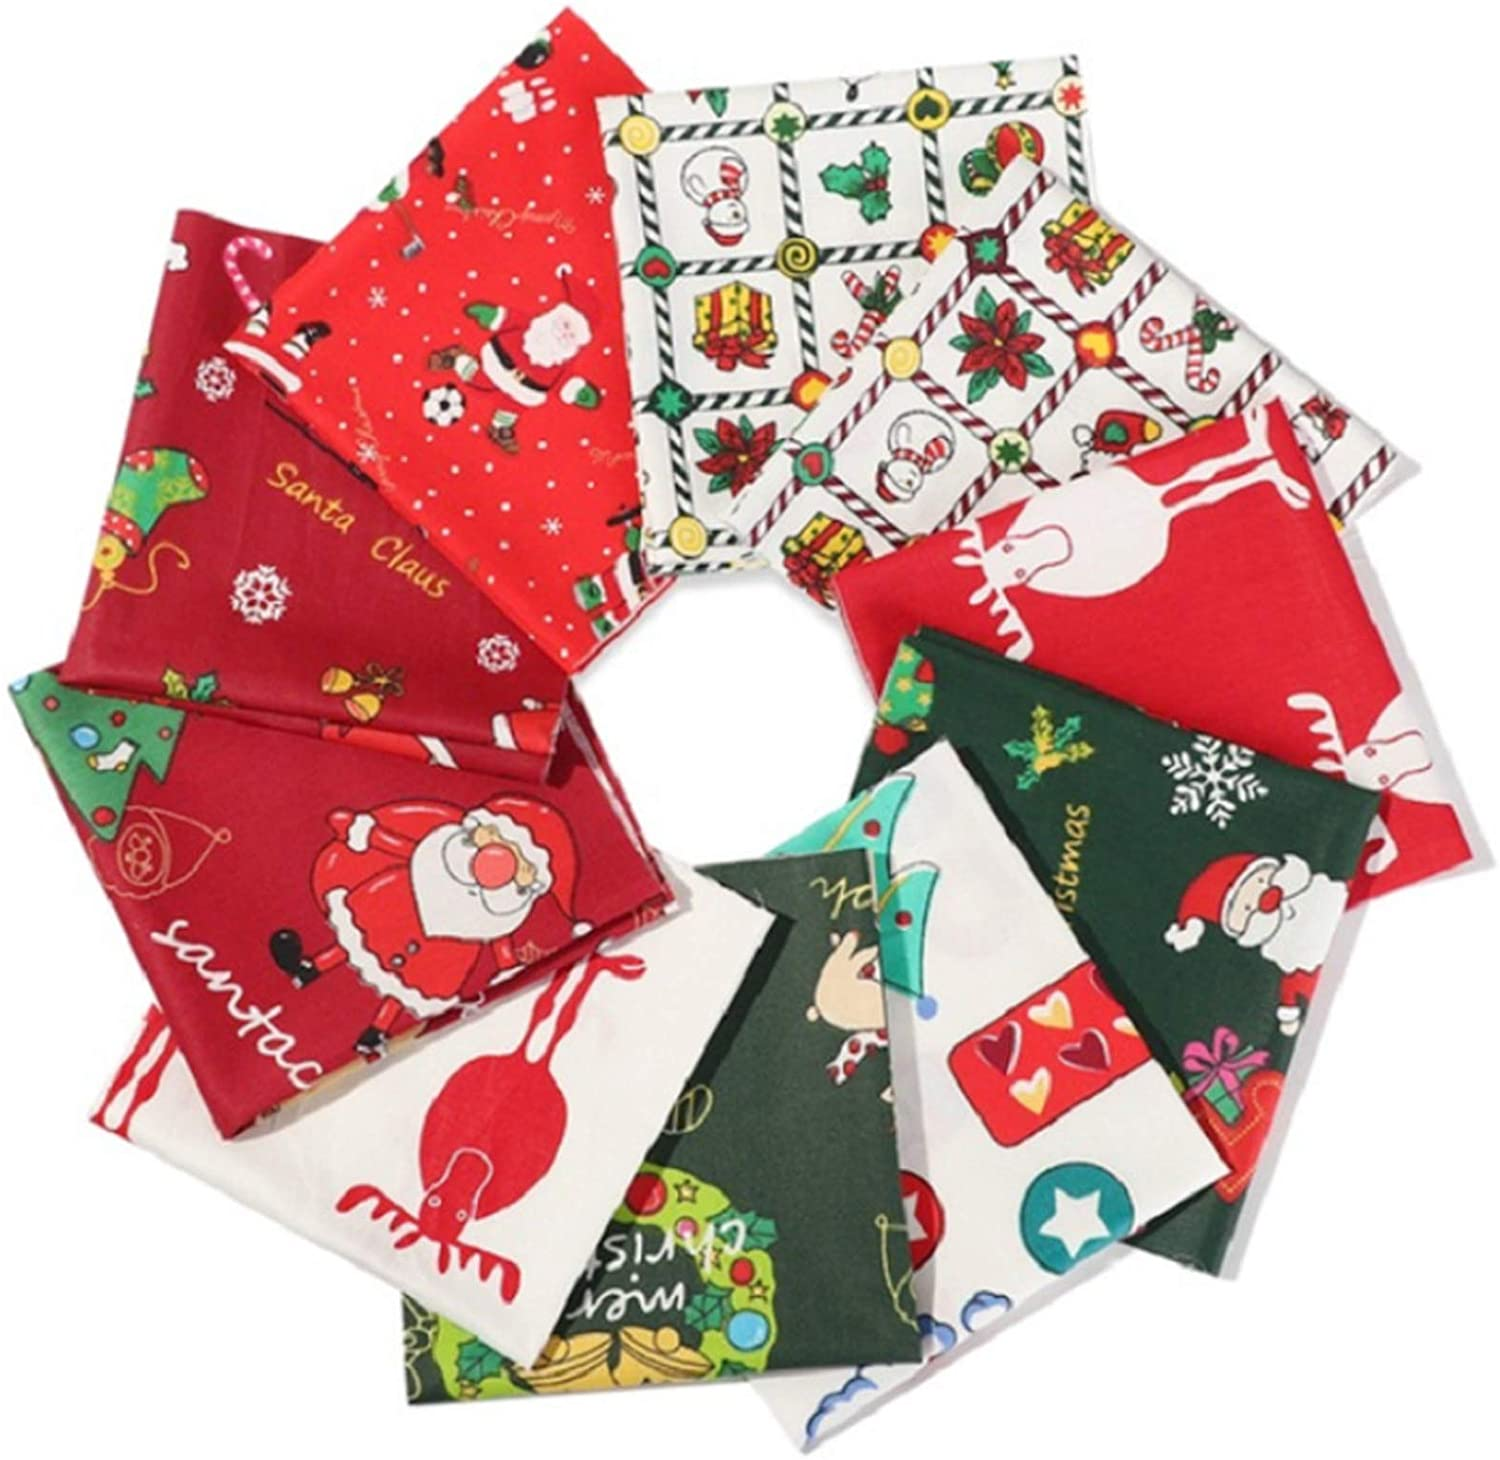 10 Pieces Christmas Fabric,Multicolor Christmas Cotton Fabric Christmas Fabric Squares for DIY Christmas Party Supplies 10x10 Inch